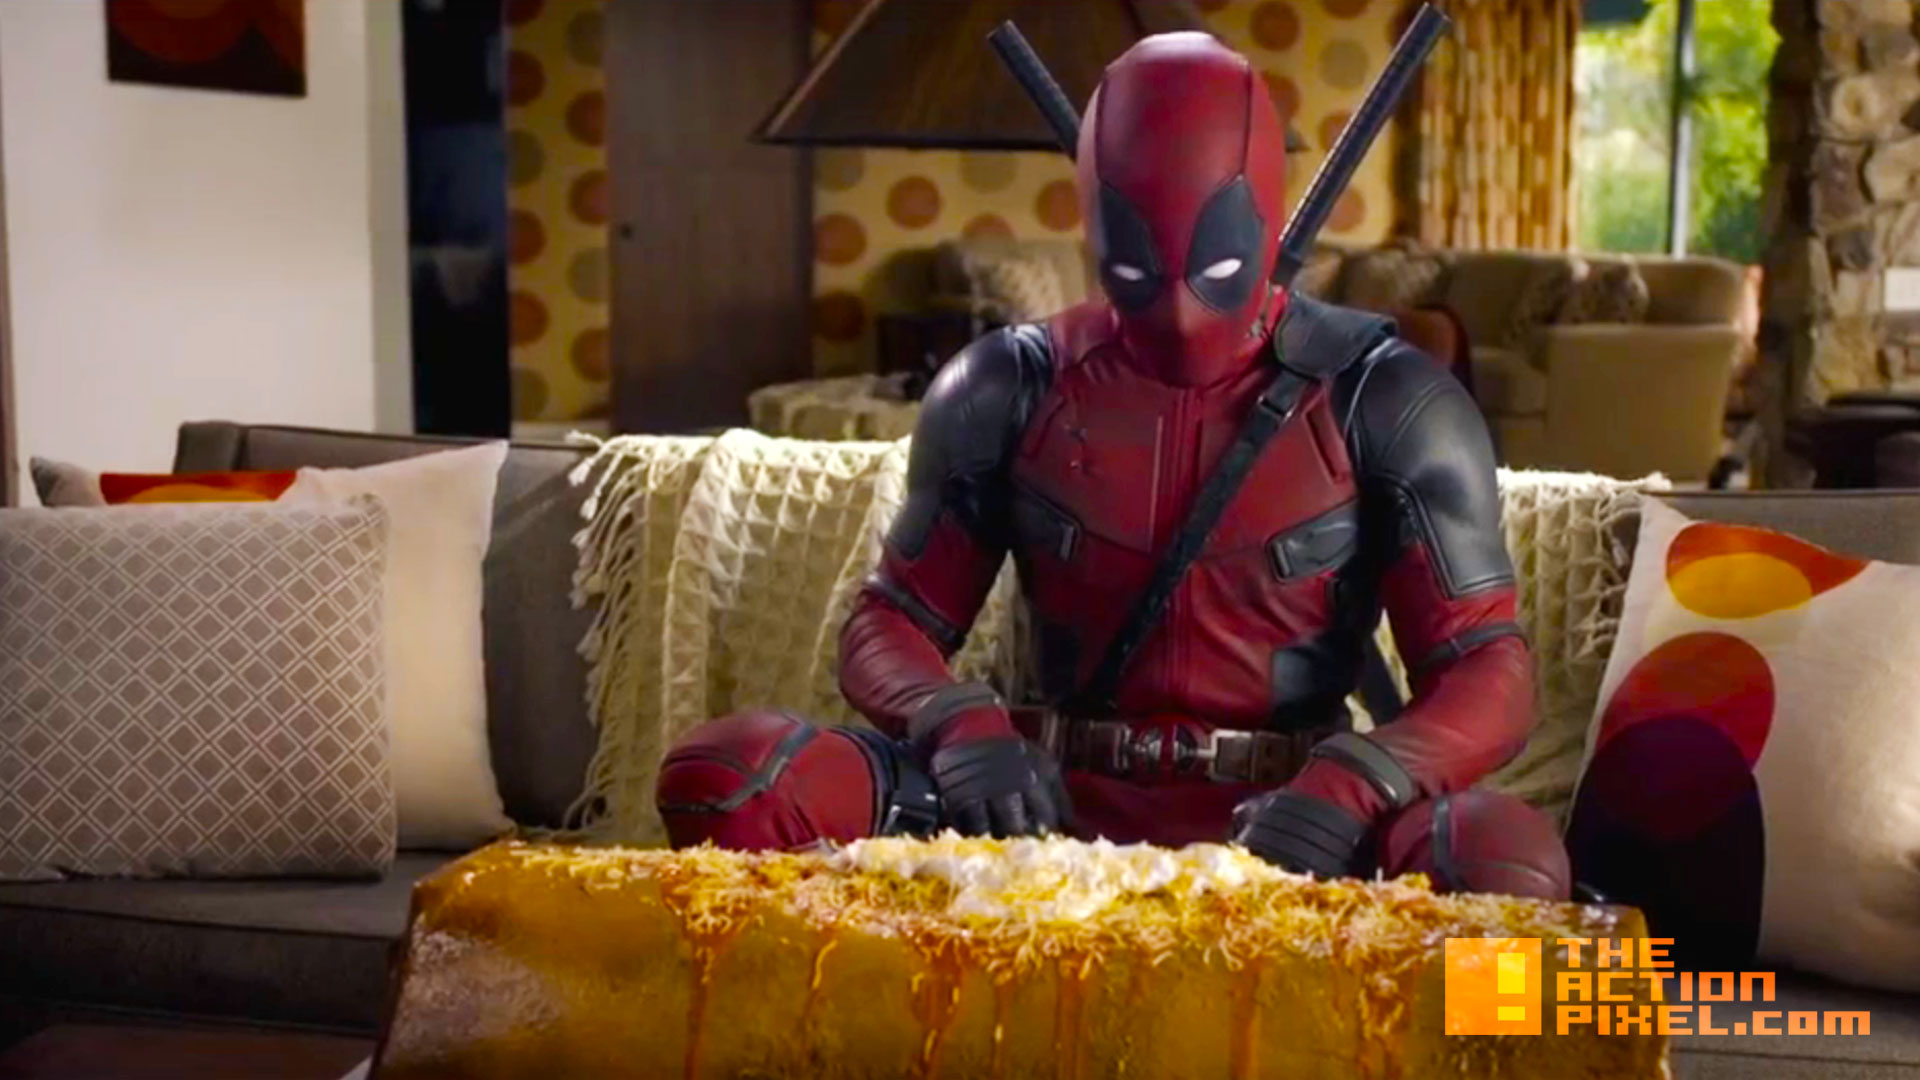 deadpool chimichanga IMAX trailer. the action pixel. @theactionpixel . 20th century fox. @theactionpixel